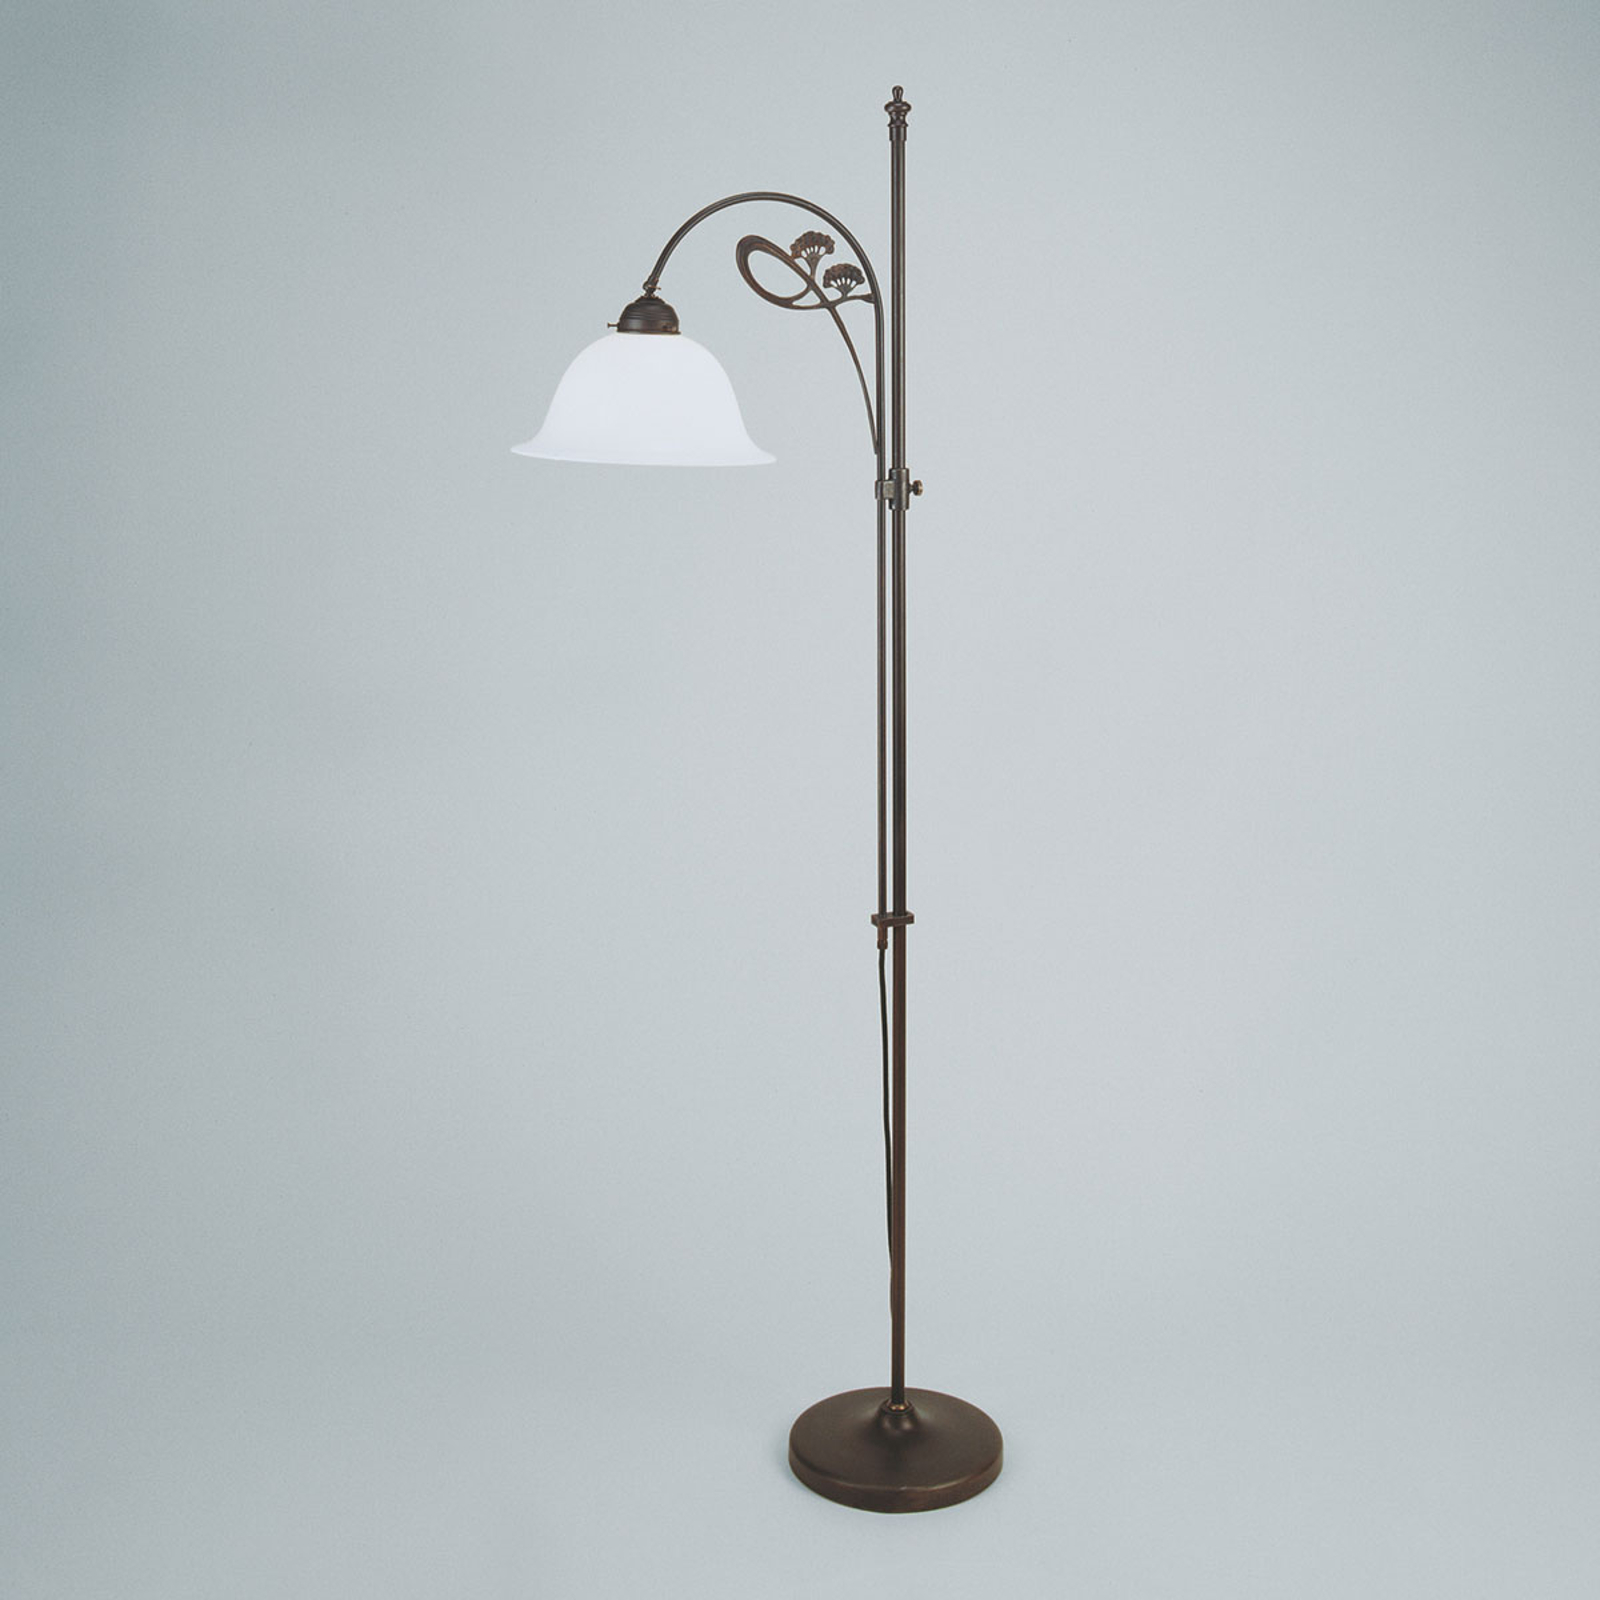 Ilka subtle floor lamp, antique colour scheme_1542057_1